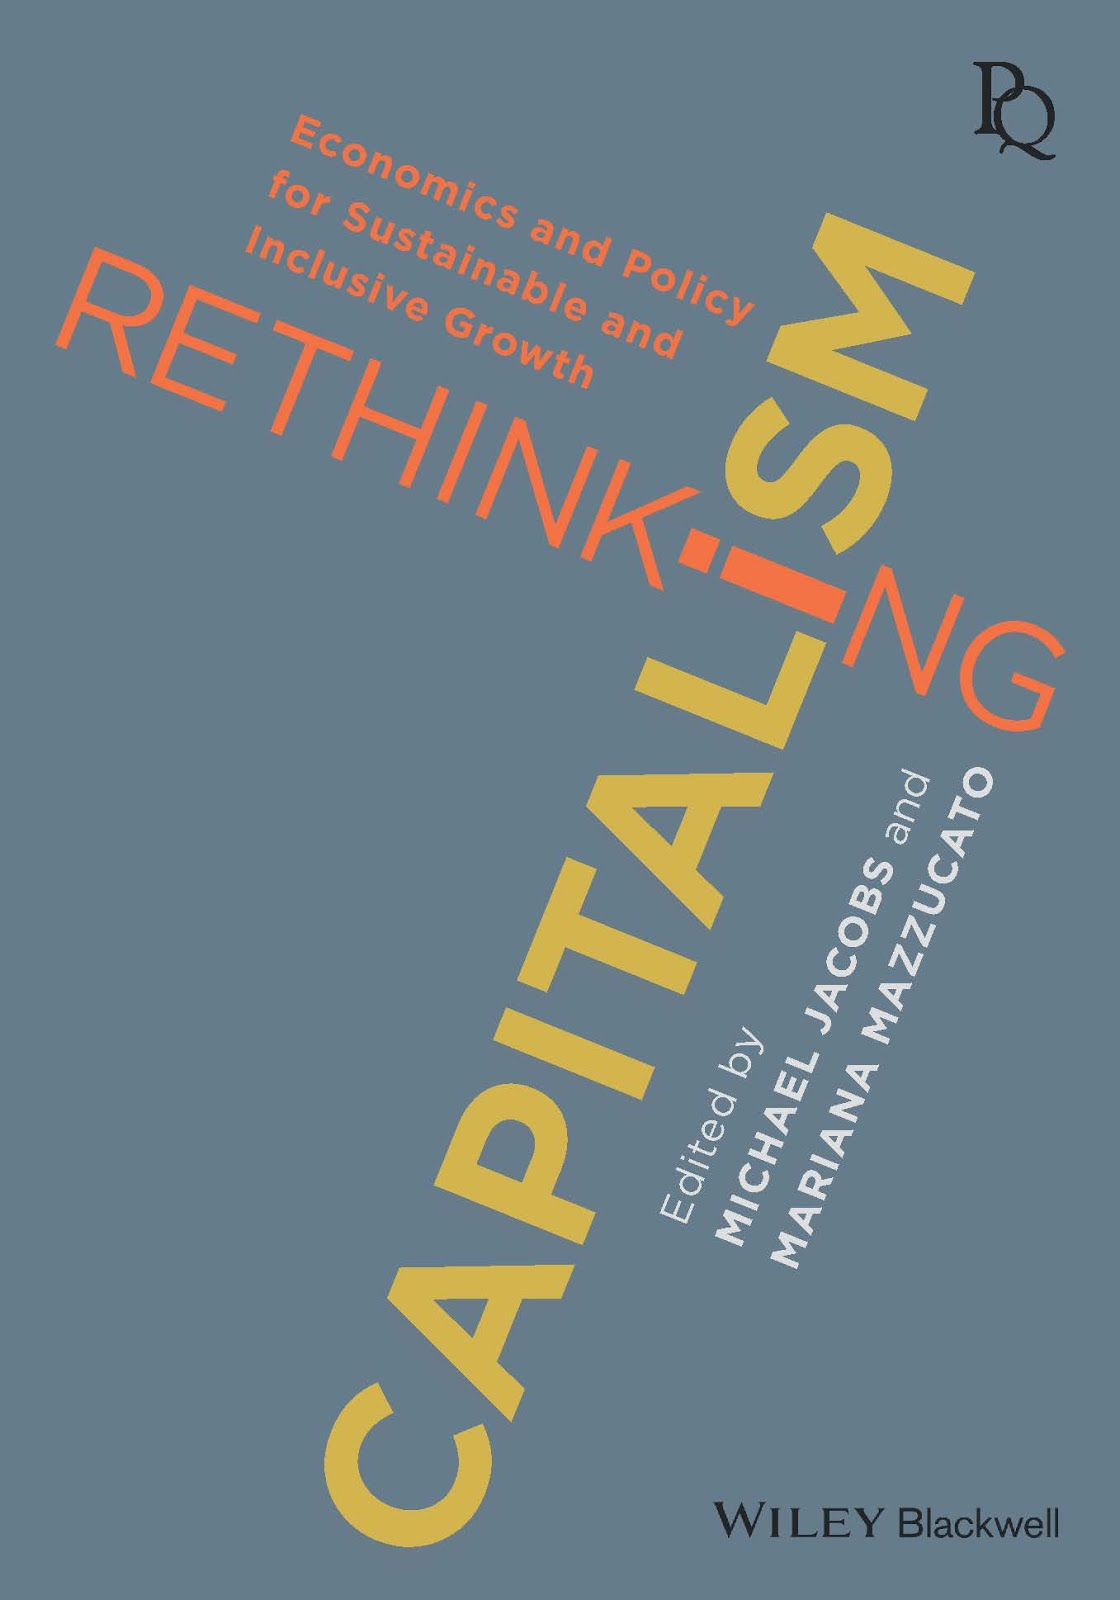 Forthcoming. Rethinking Capitalism